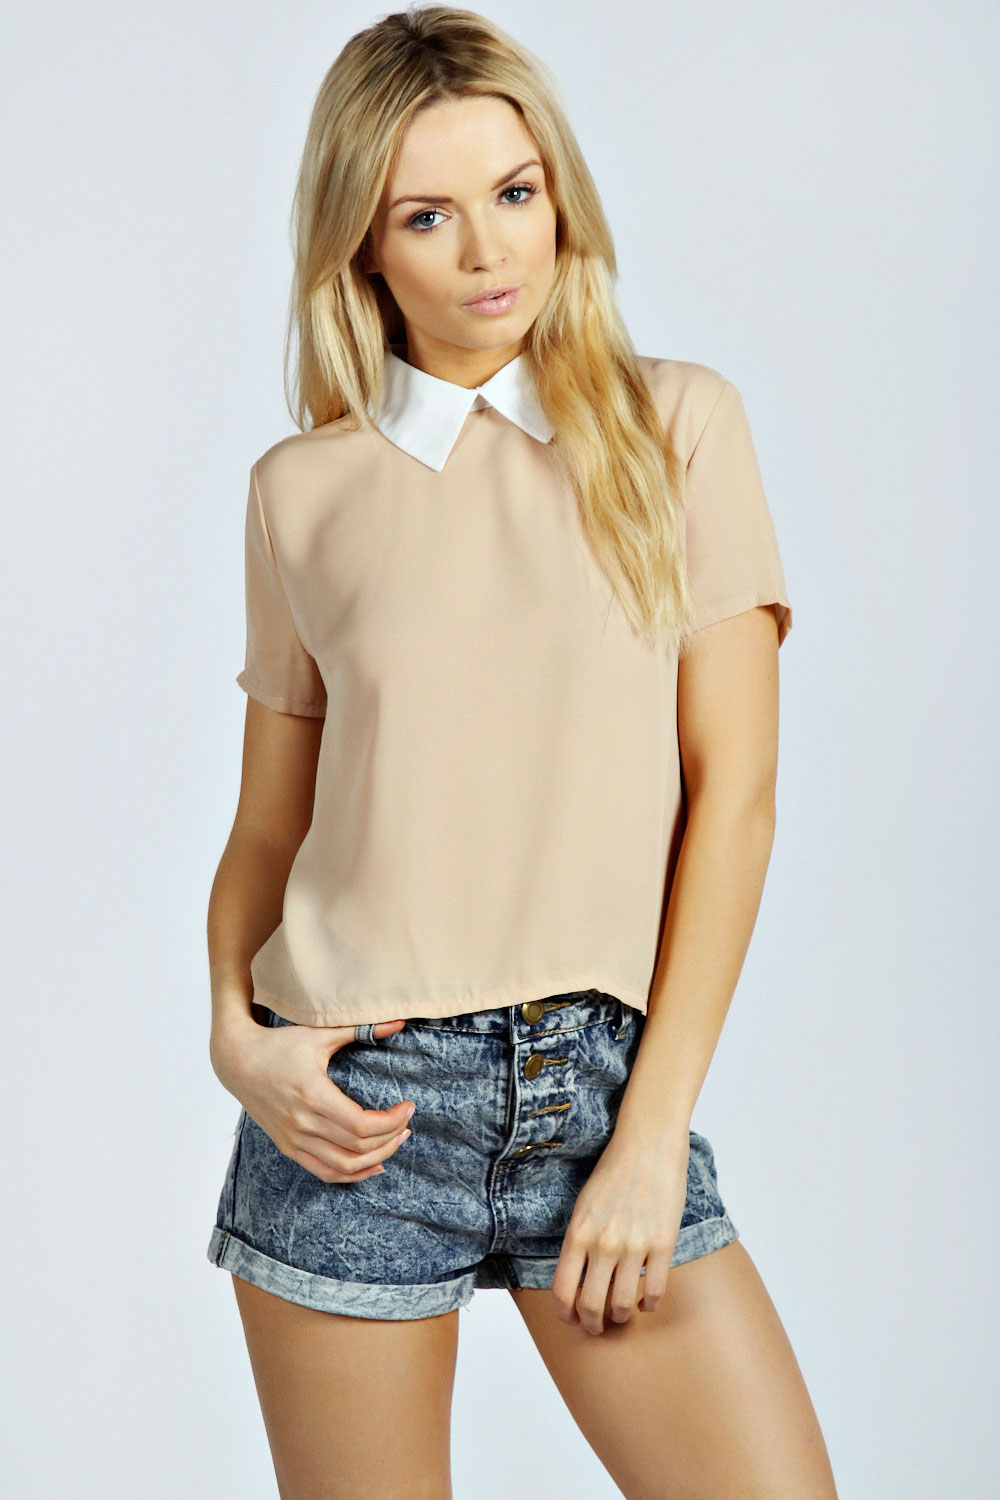 boohoo Amelia Contrast Collar Blouse - nude product image